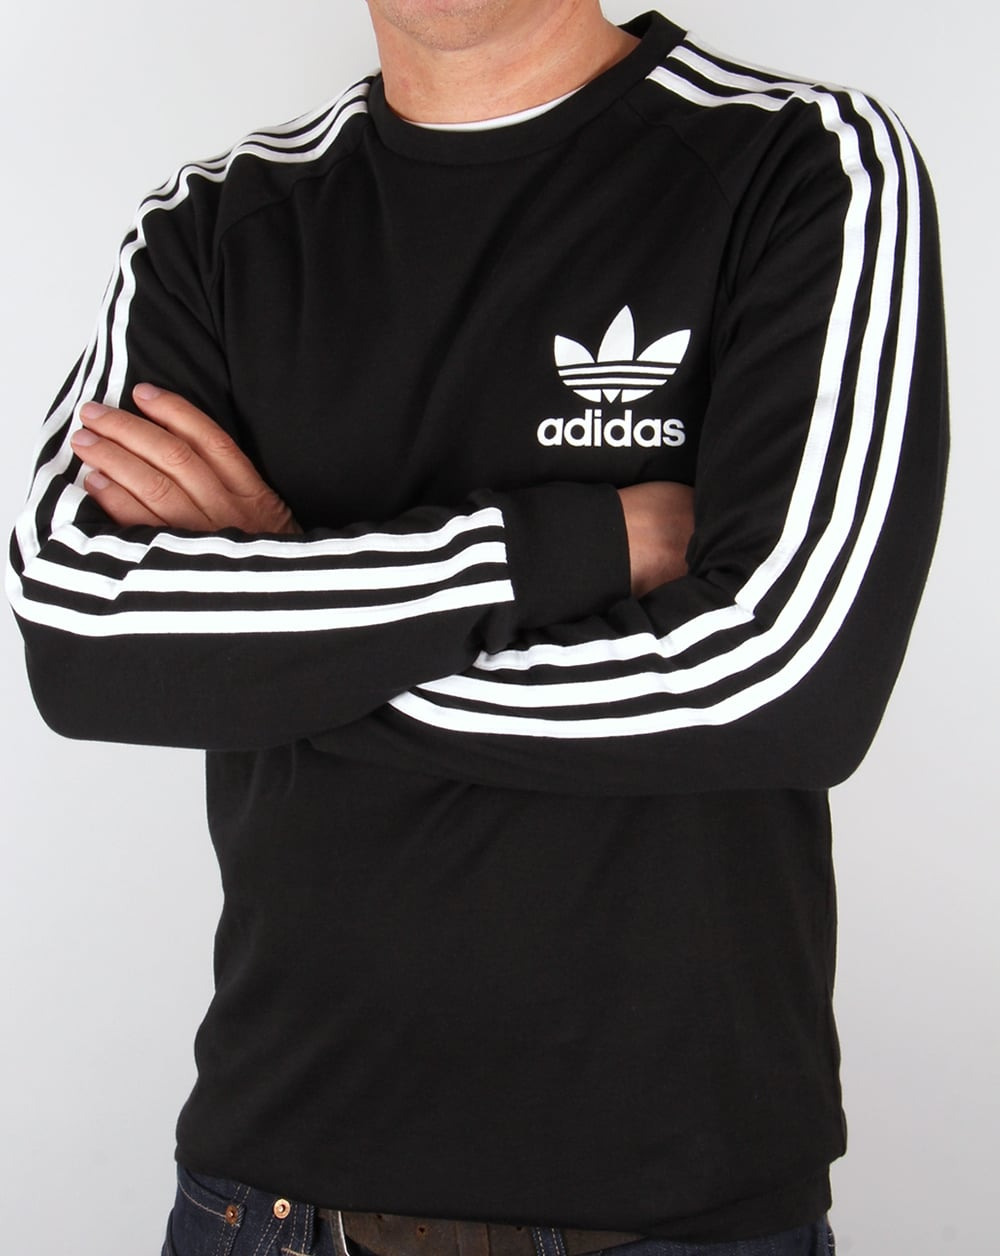 Adidas originals clfn long sleeve t shirt black trefoil for Adidas long sleeve t shirt with trefoil logo